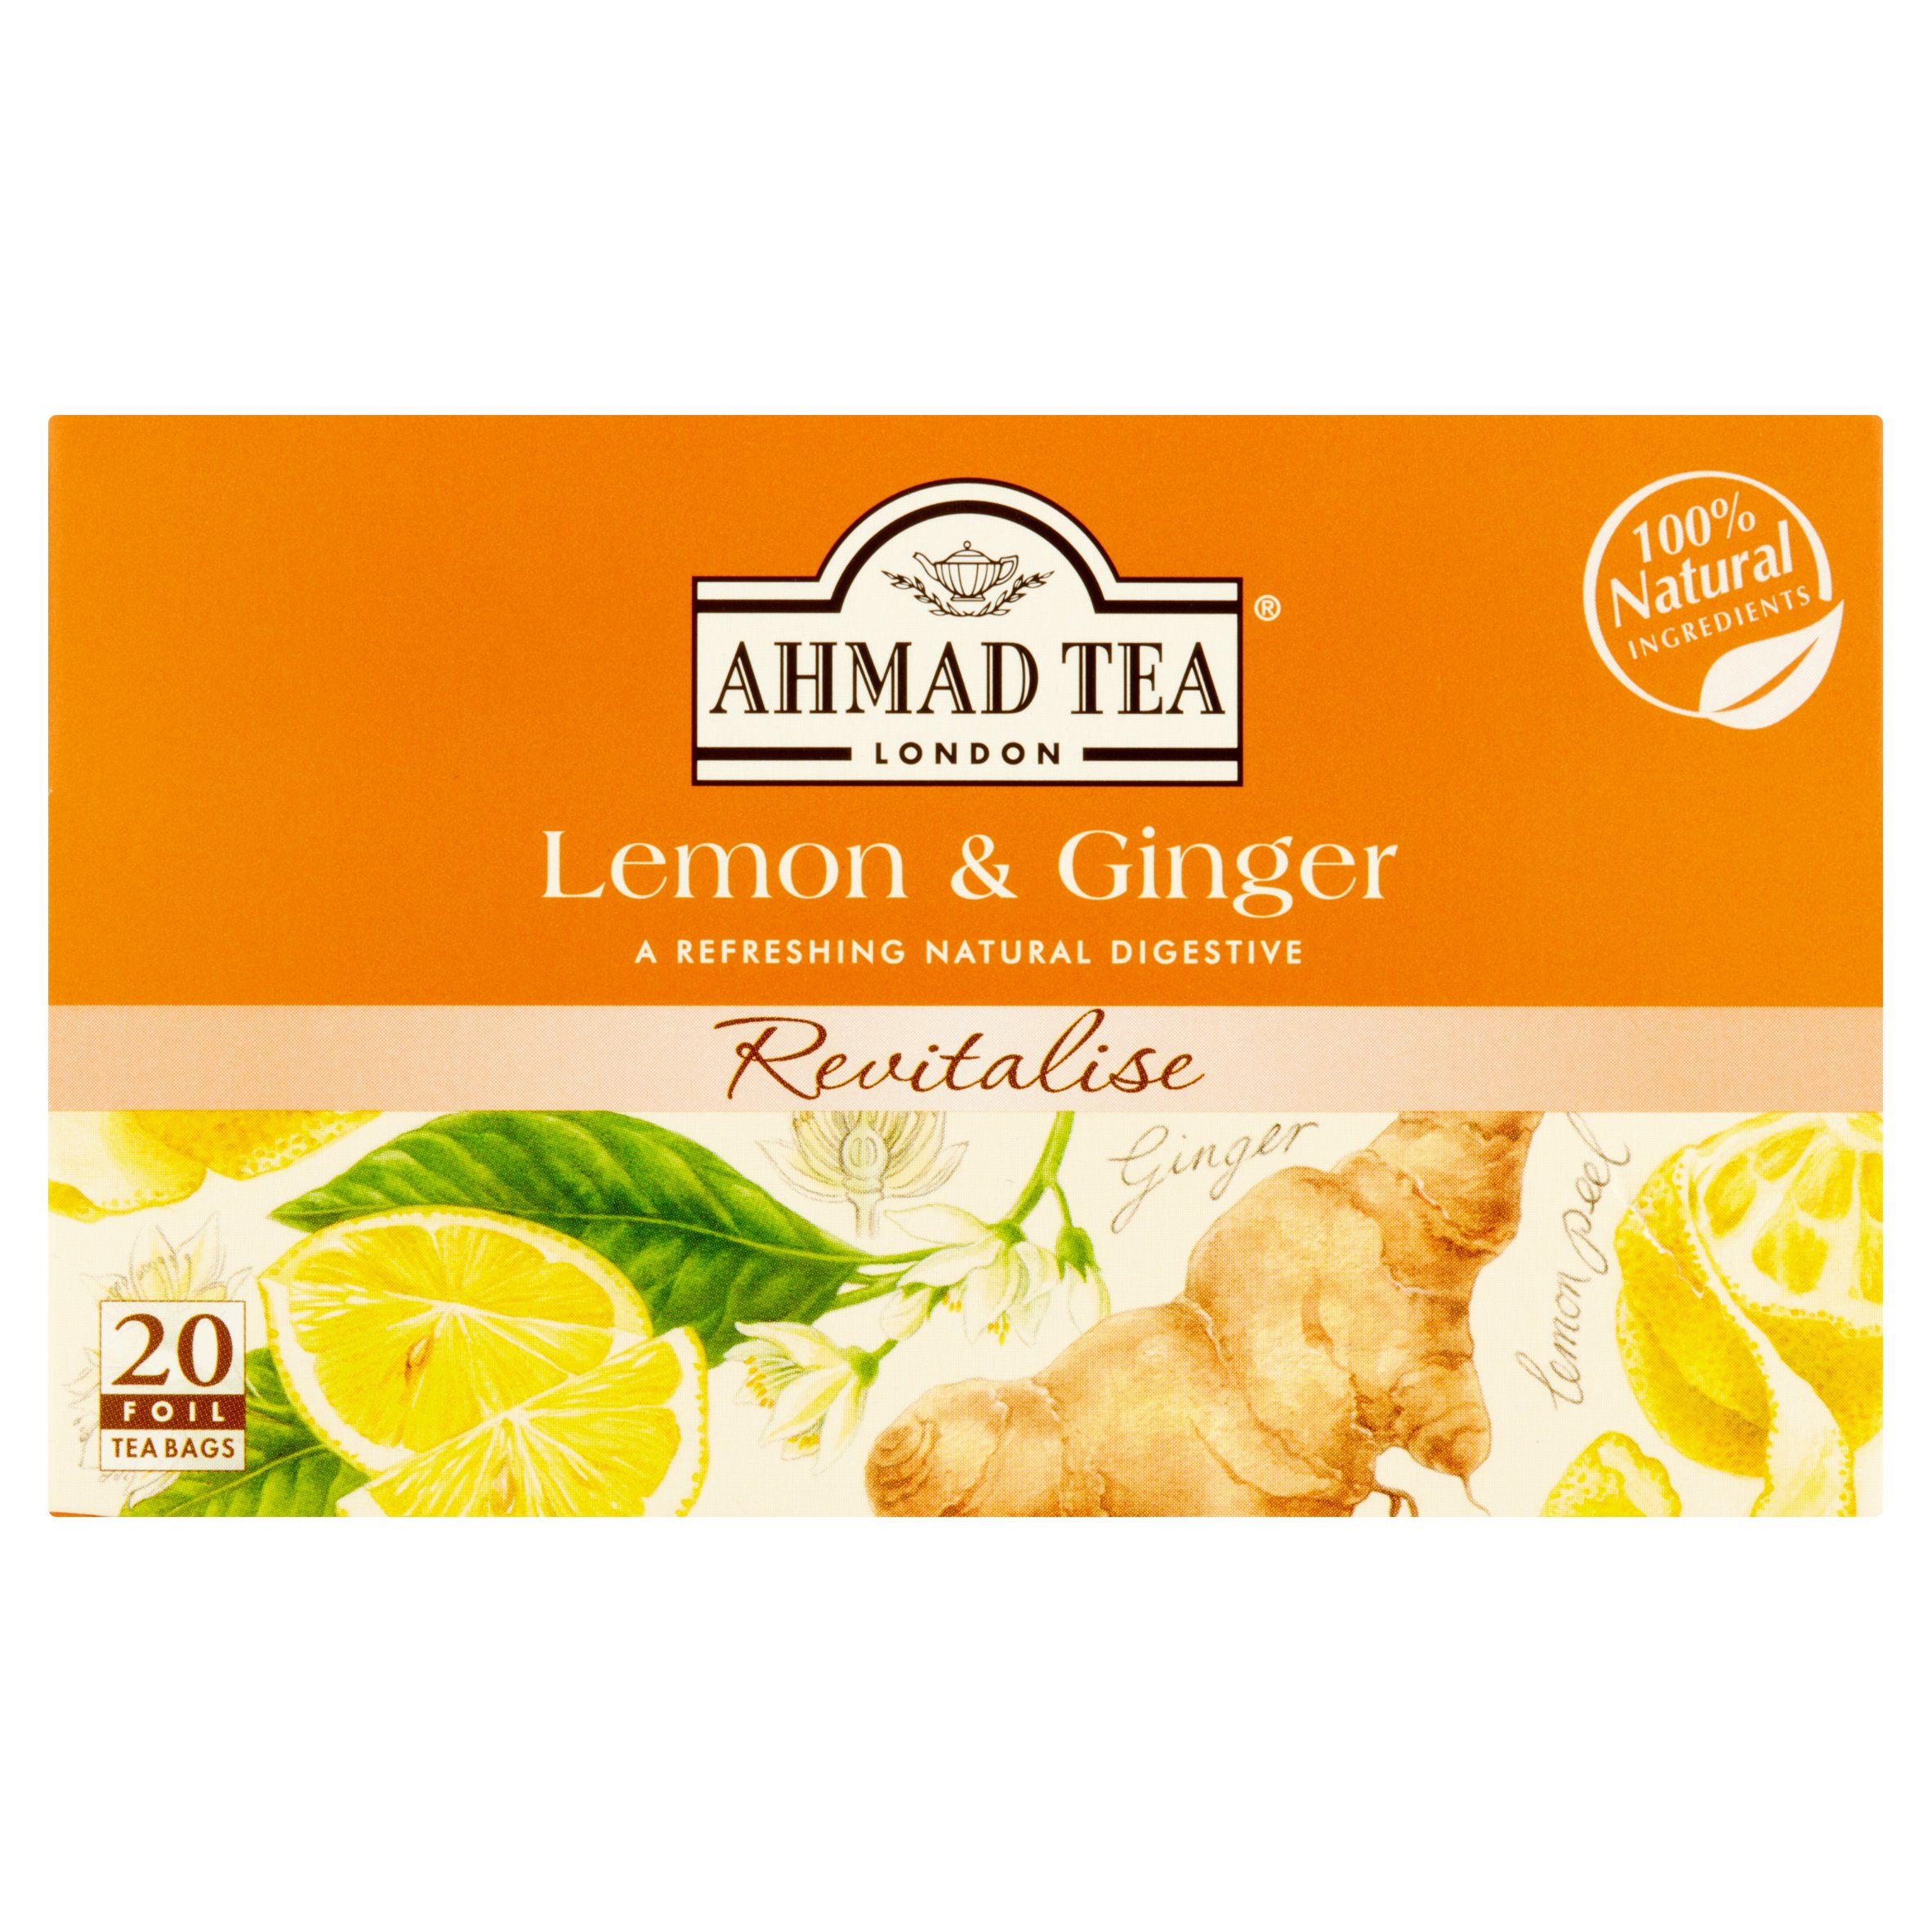 medium ahmad tea london lemon ginger tea 20 bags b74XYKgHC